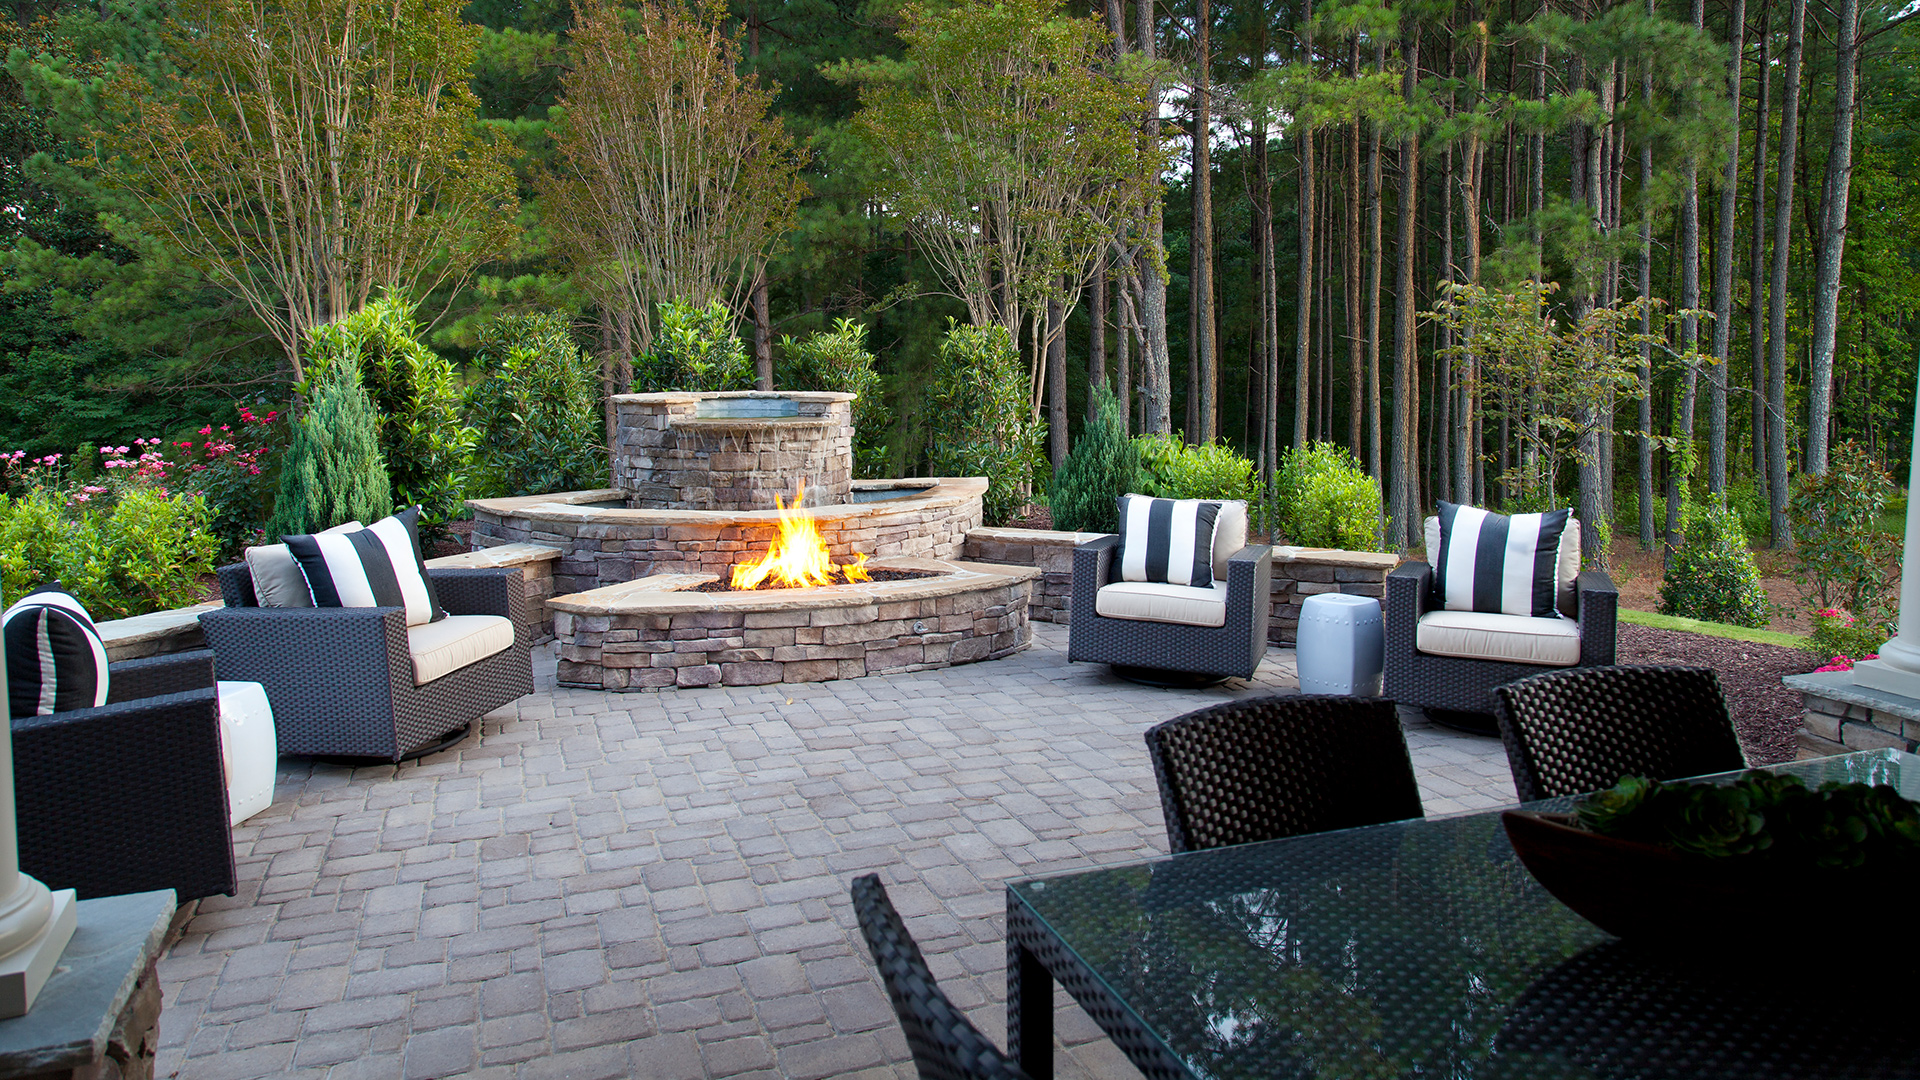 New Luxury Homes for Sale in Apex, NC   Regency at White ... on Outdoor Living Sale id=76441